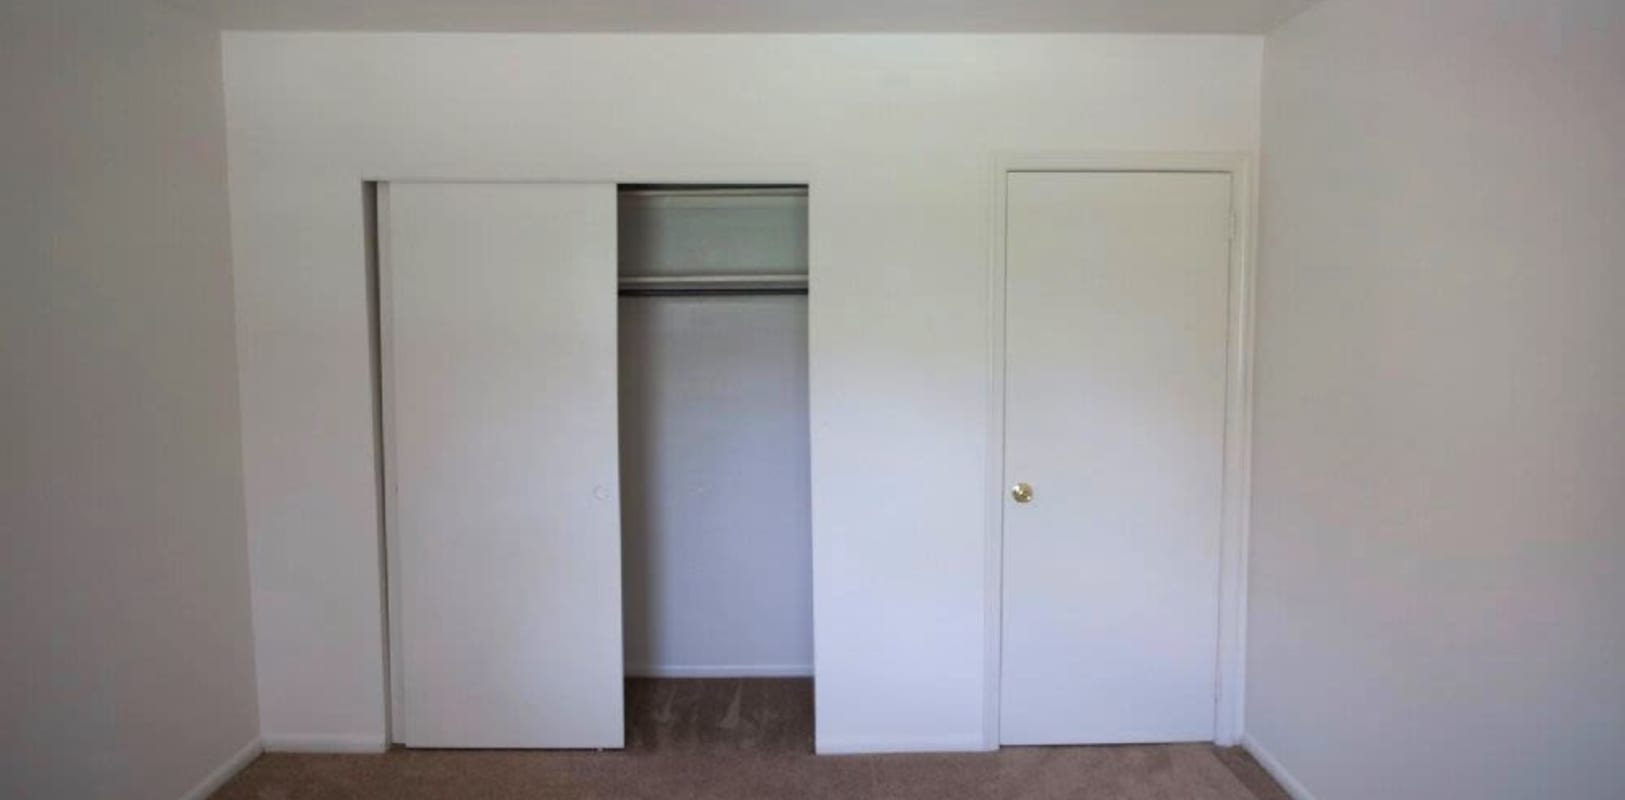 Bedroom with closet space for extra storage at Spring Valley Apartments in Sinking Spring, Pennsylvania